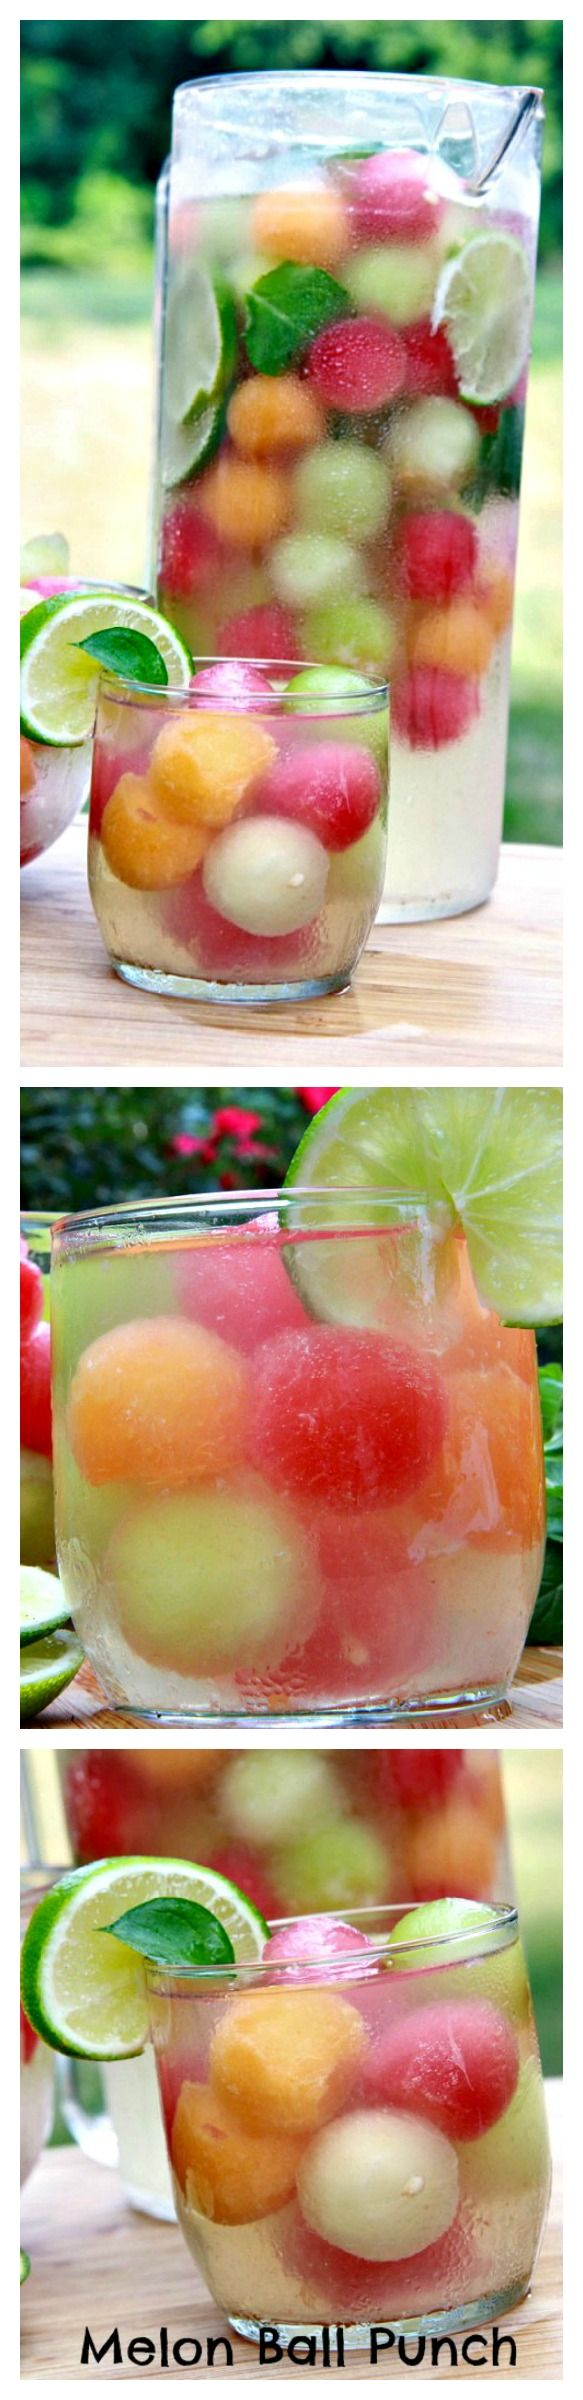 Refreshing Belly Slimming detox! This stuff is what summertime is made of! Fizzy, lightly sweetened and full of melon flavor!